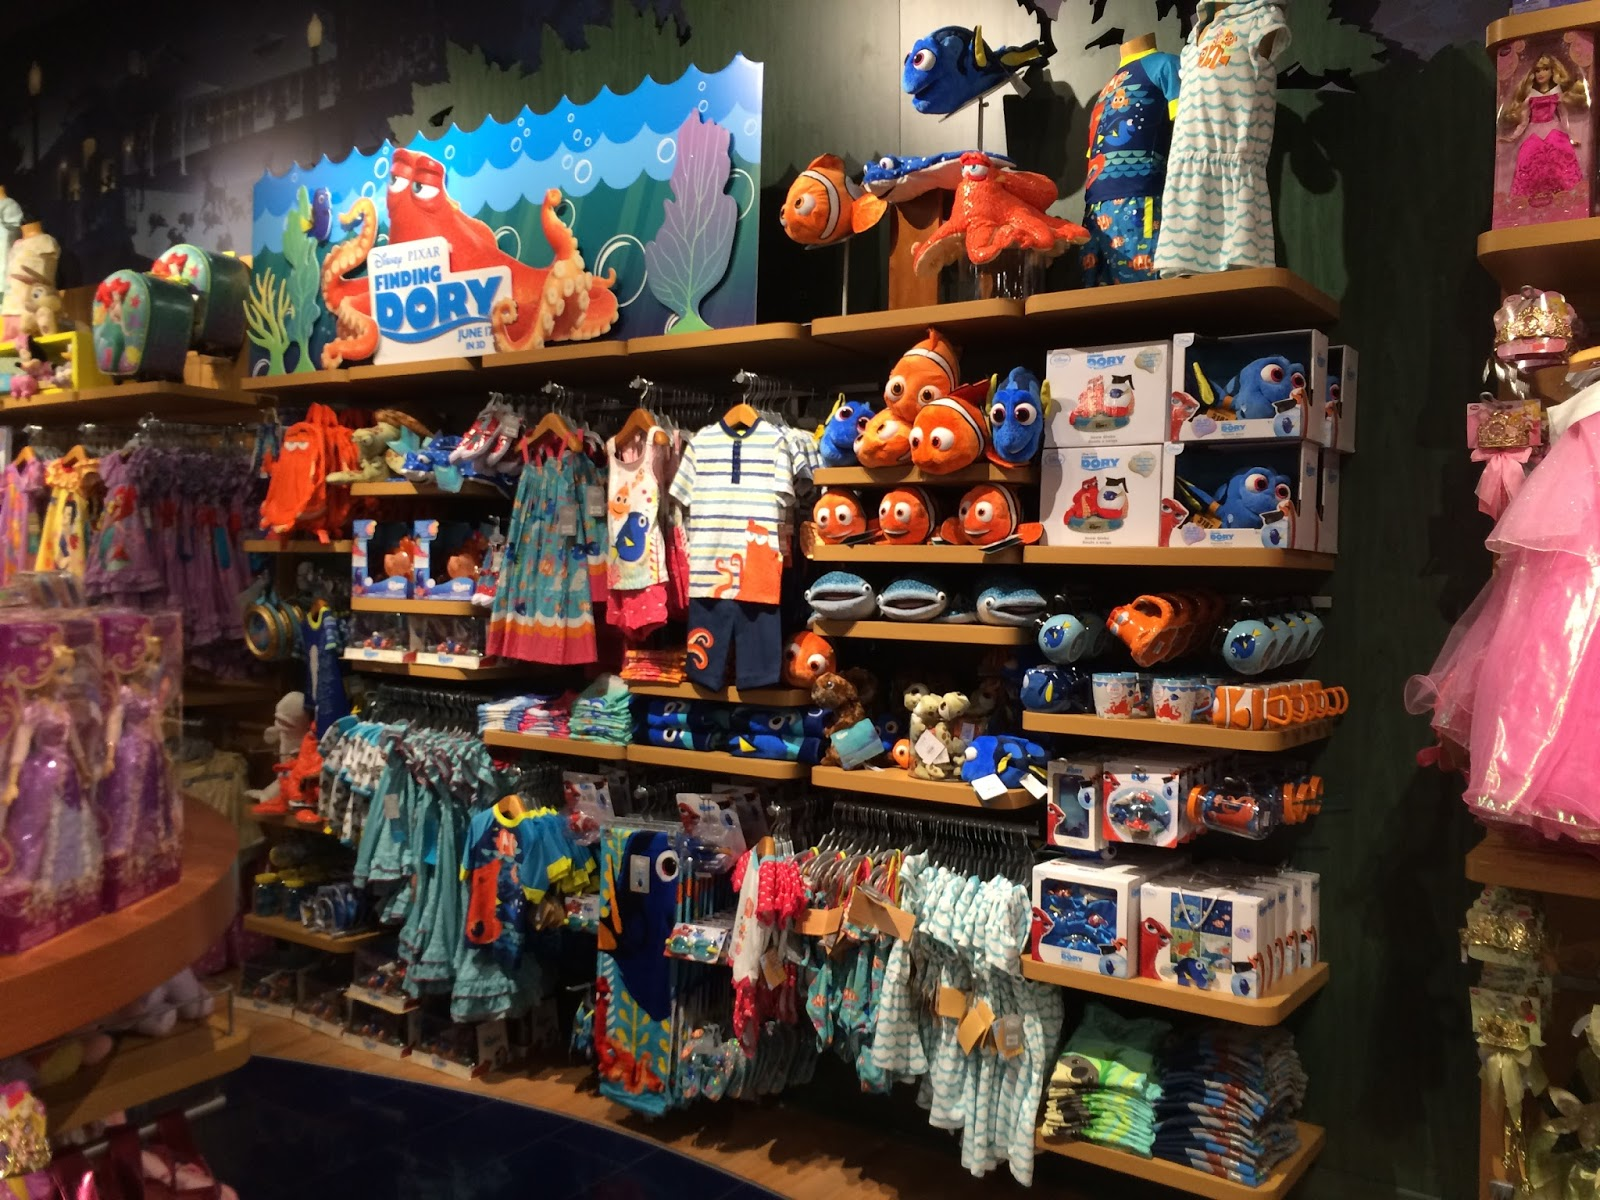 Toys For Disney : Dan the pixar fan events disney store finding dory merch